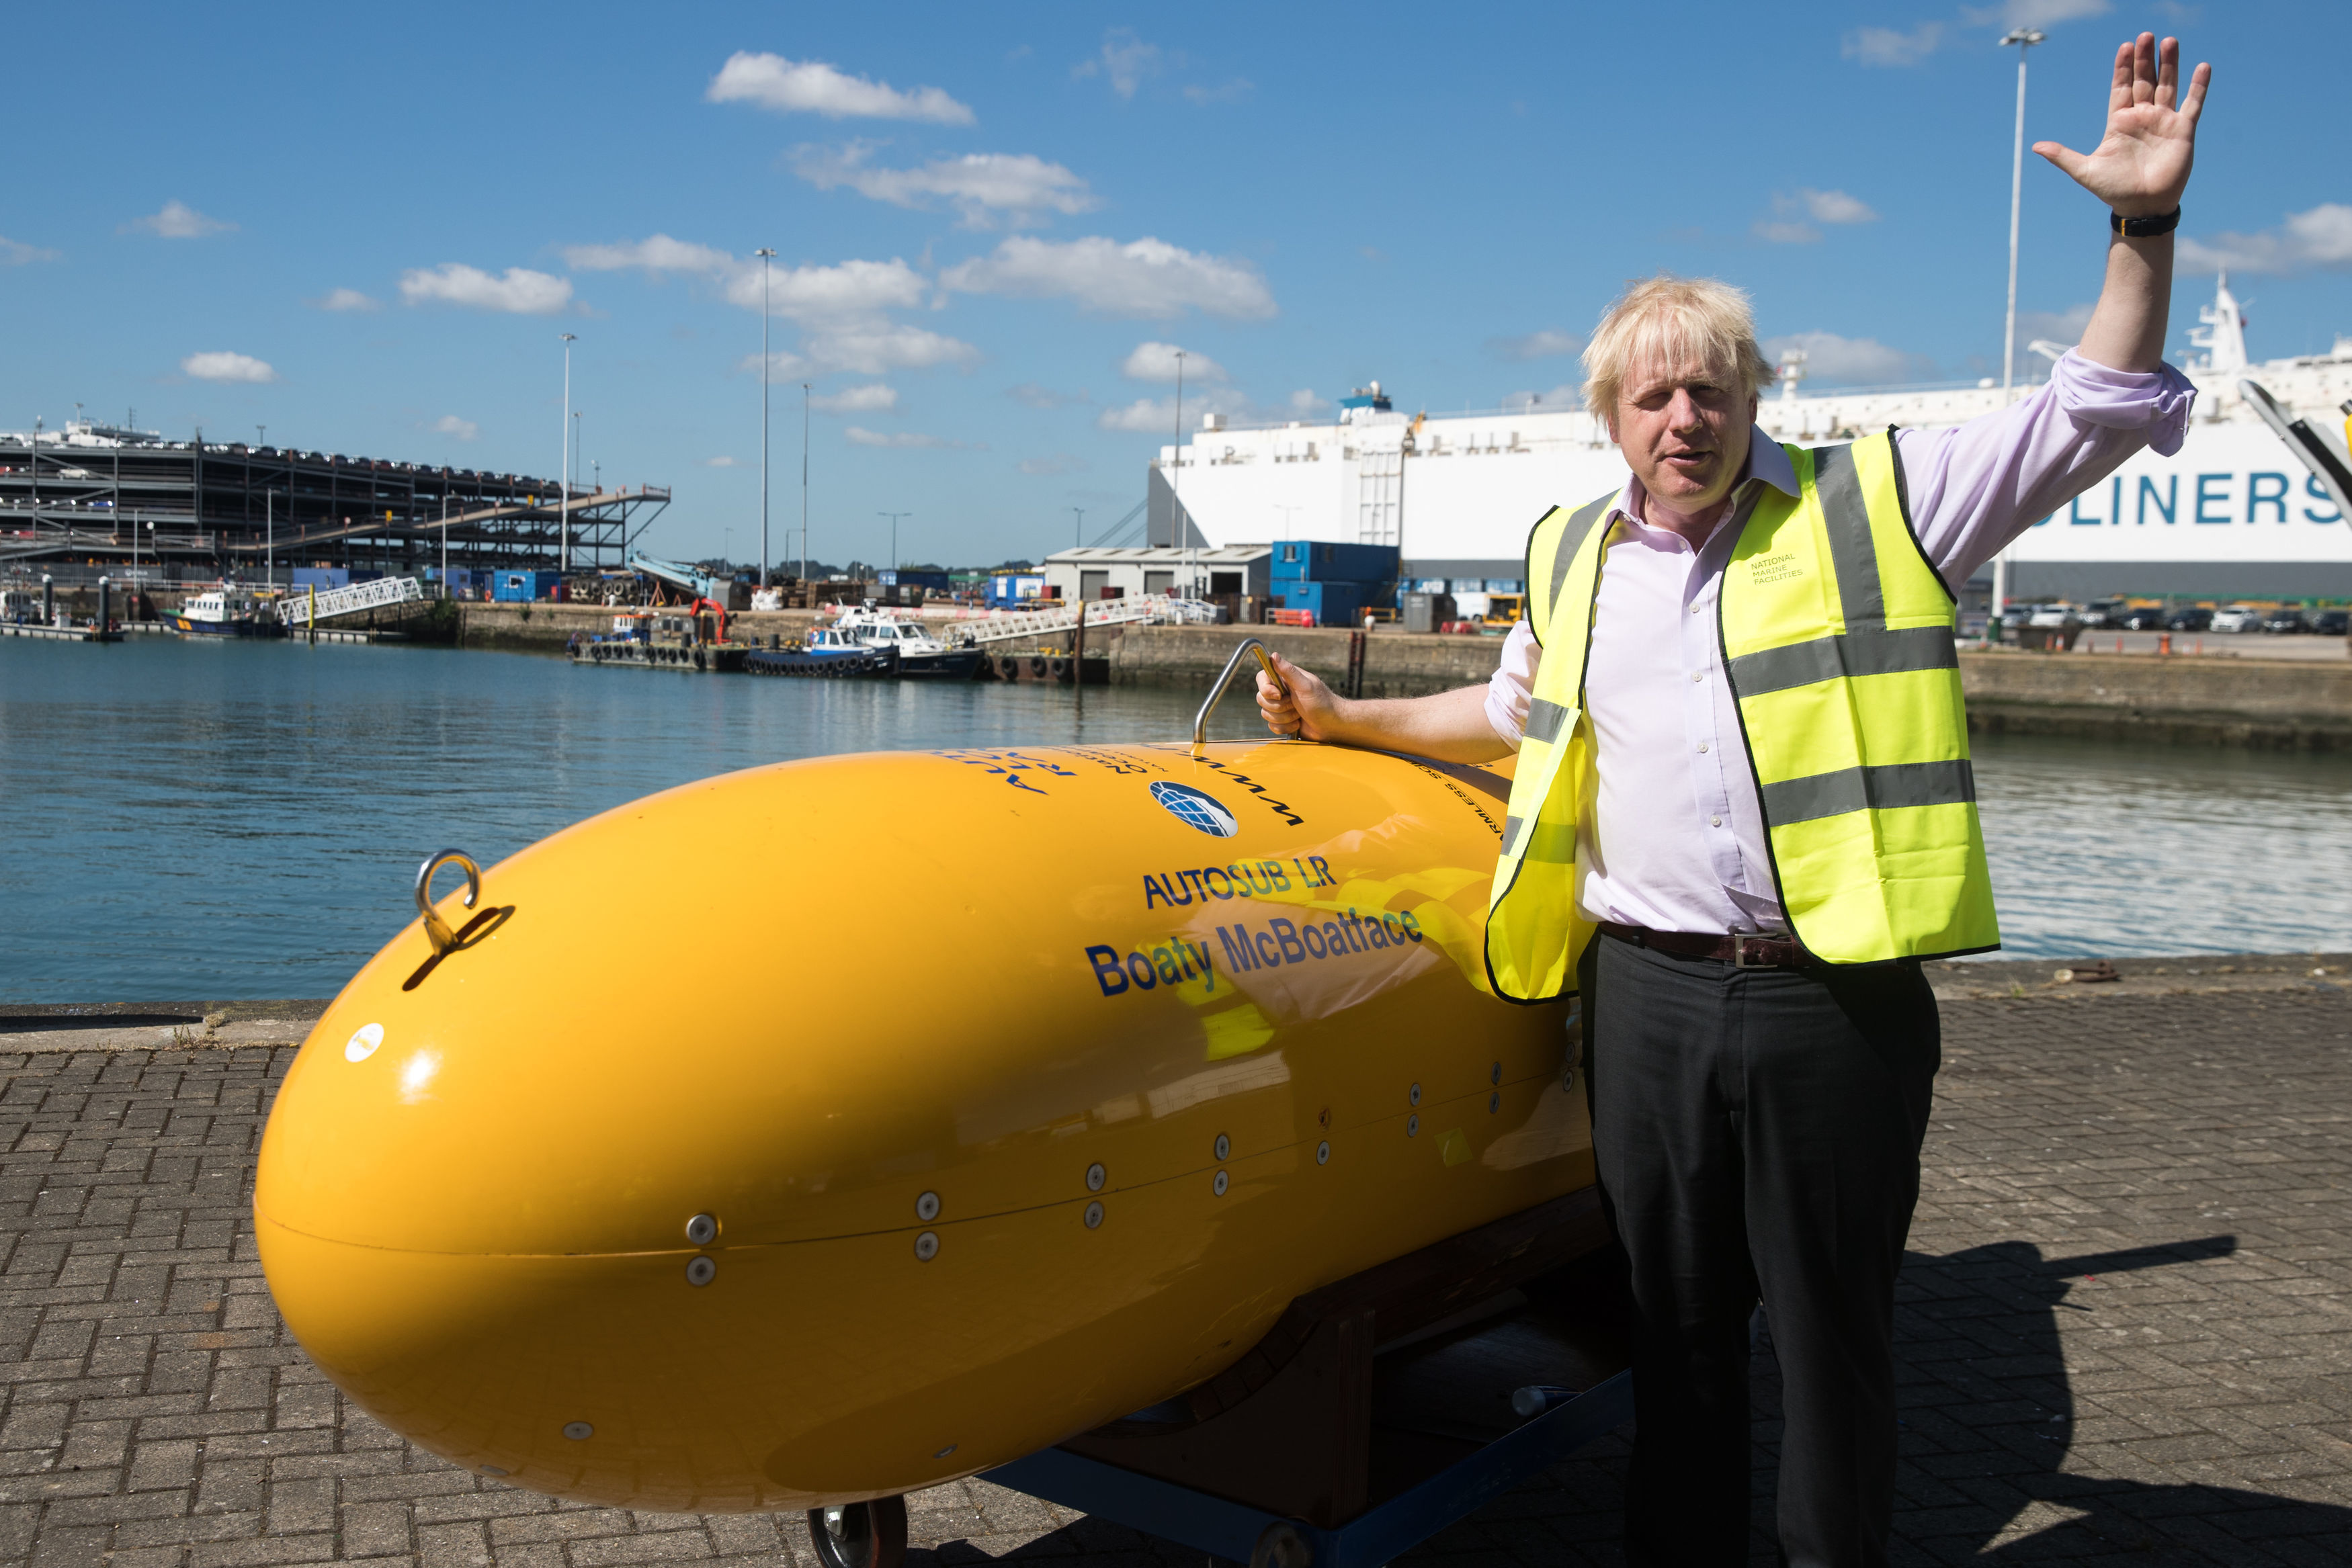 Former Foreign Secretary, Boris Johnson, with Boaty McBoatface, an autonomous underwater vehicle used for scientific research